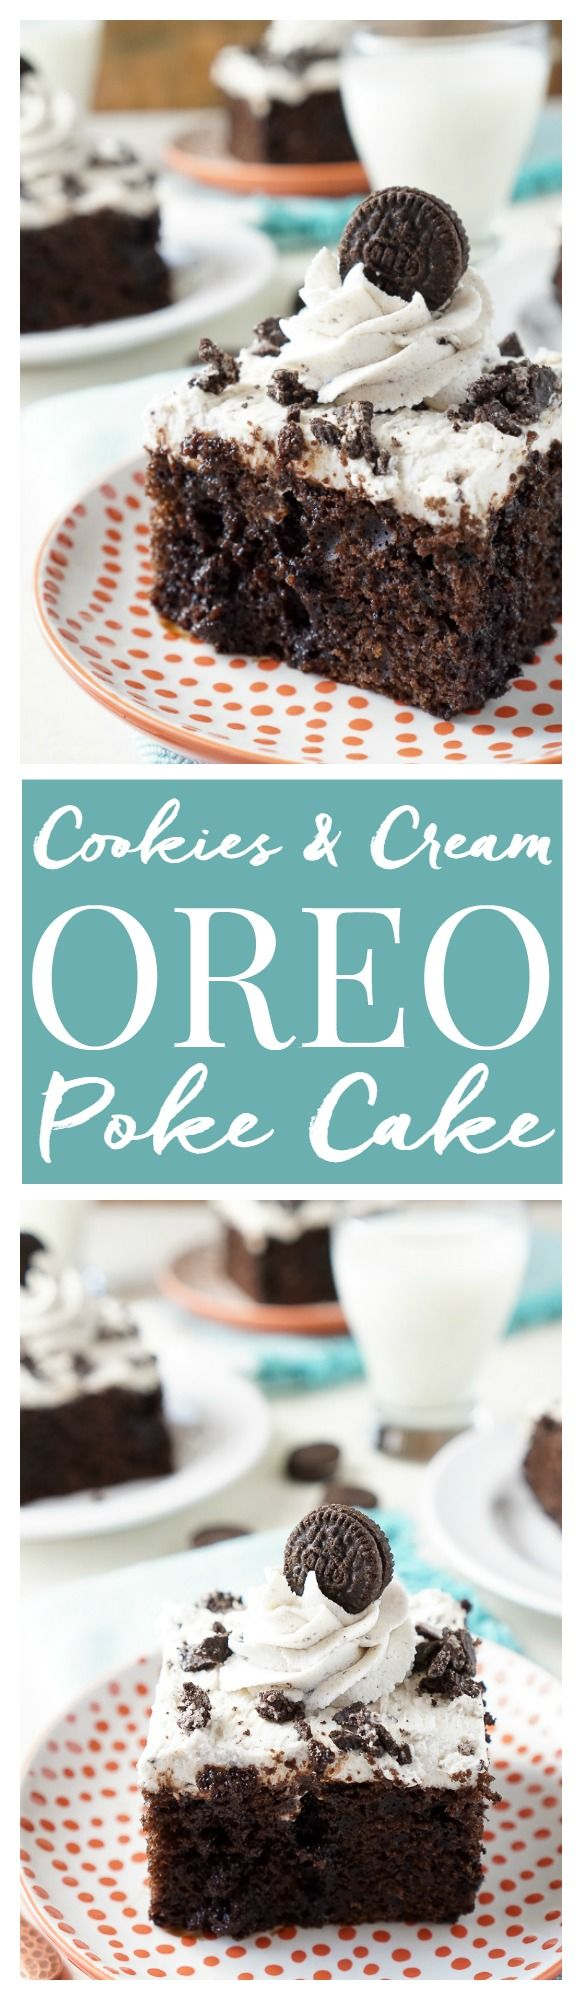 This Easy Oreo Poke Cake is so simple to make! A rich chocolate cake loaded with Oreo pieces and drenched in chocolate syrup with a cookies and cream frosting!